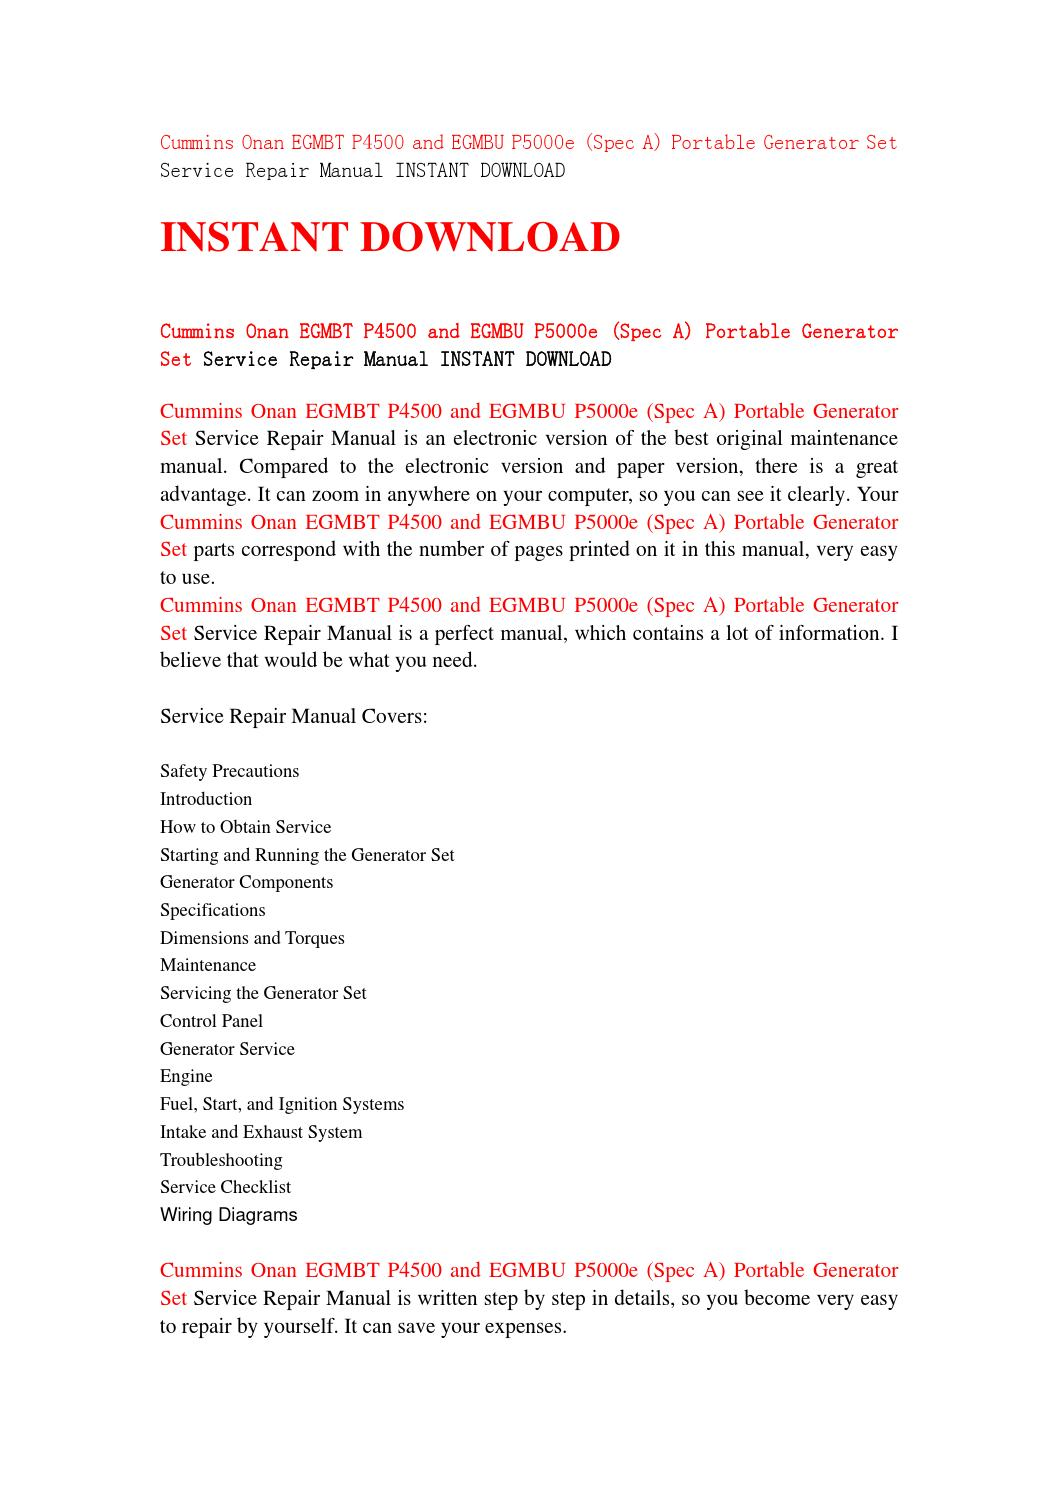 cummins onan egmbt p4500 and egmbu p5000e (spec a) portable generator set  service repair manual inst by jfhsnenf - issuu